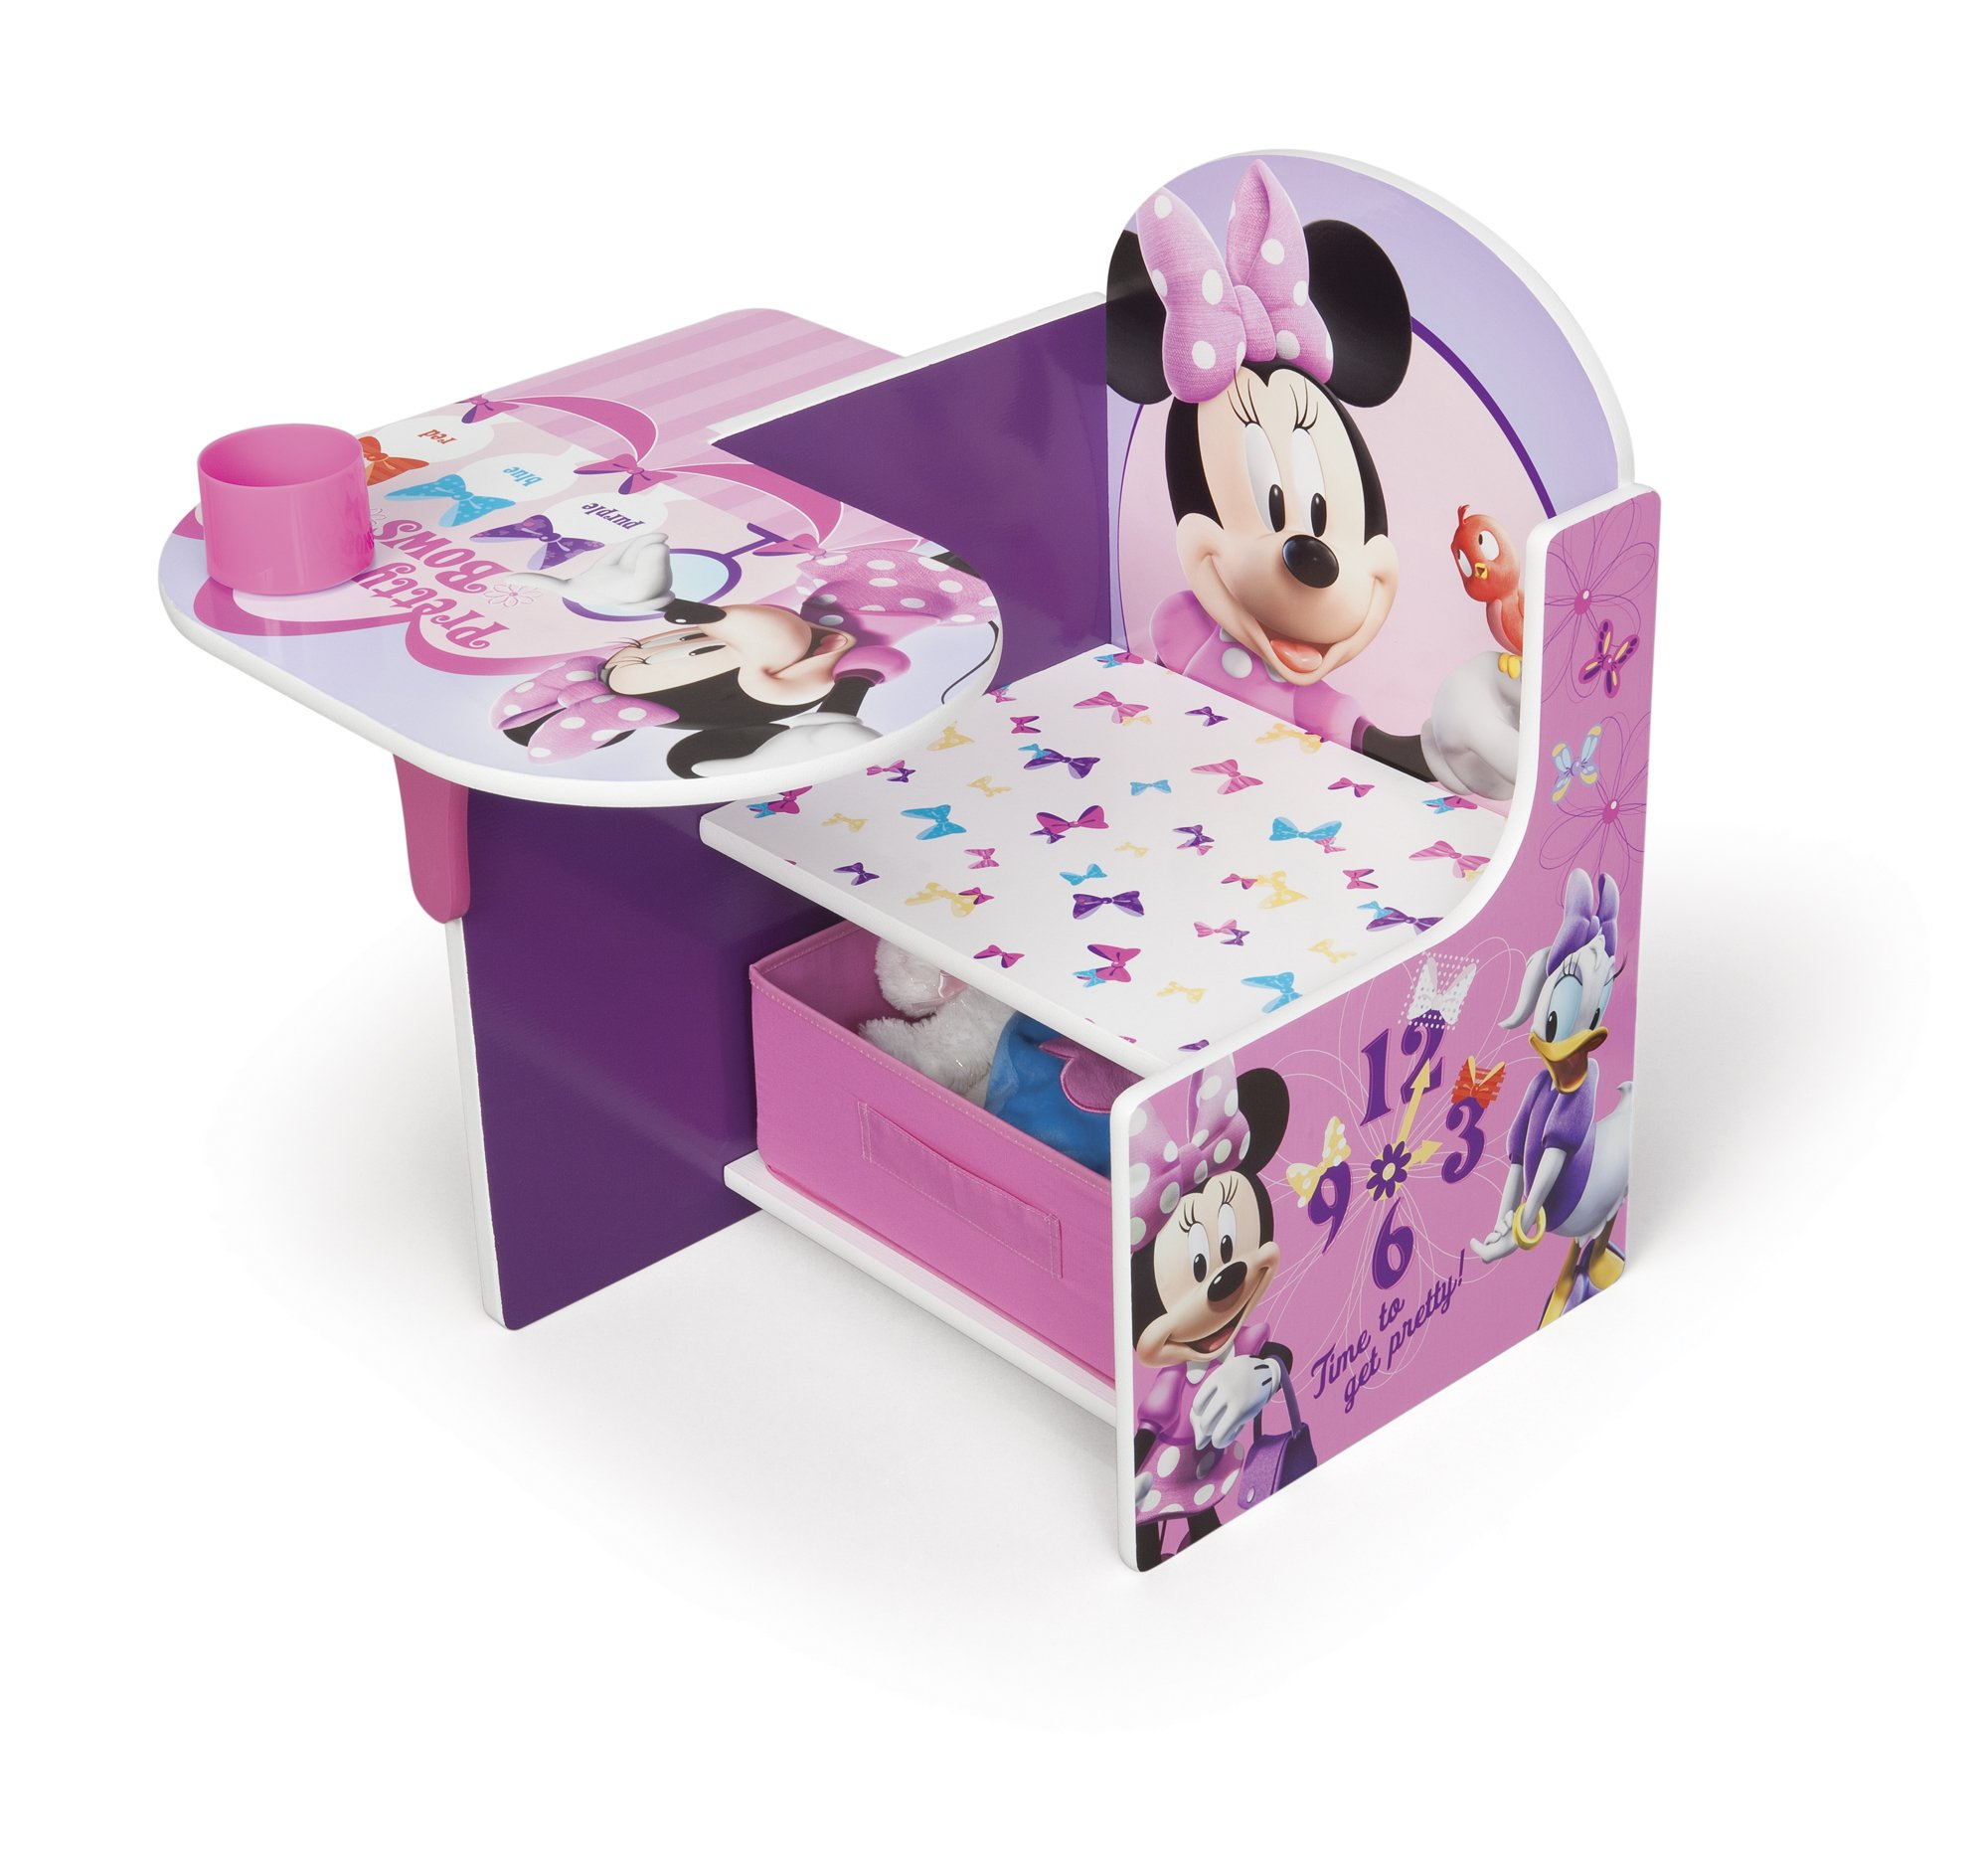 Delta Children Chair Desk With Storage Bin, Disney Minnie Mouse